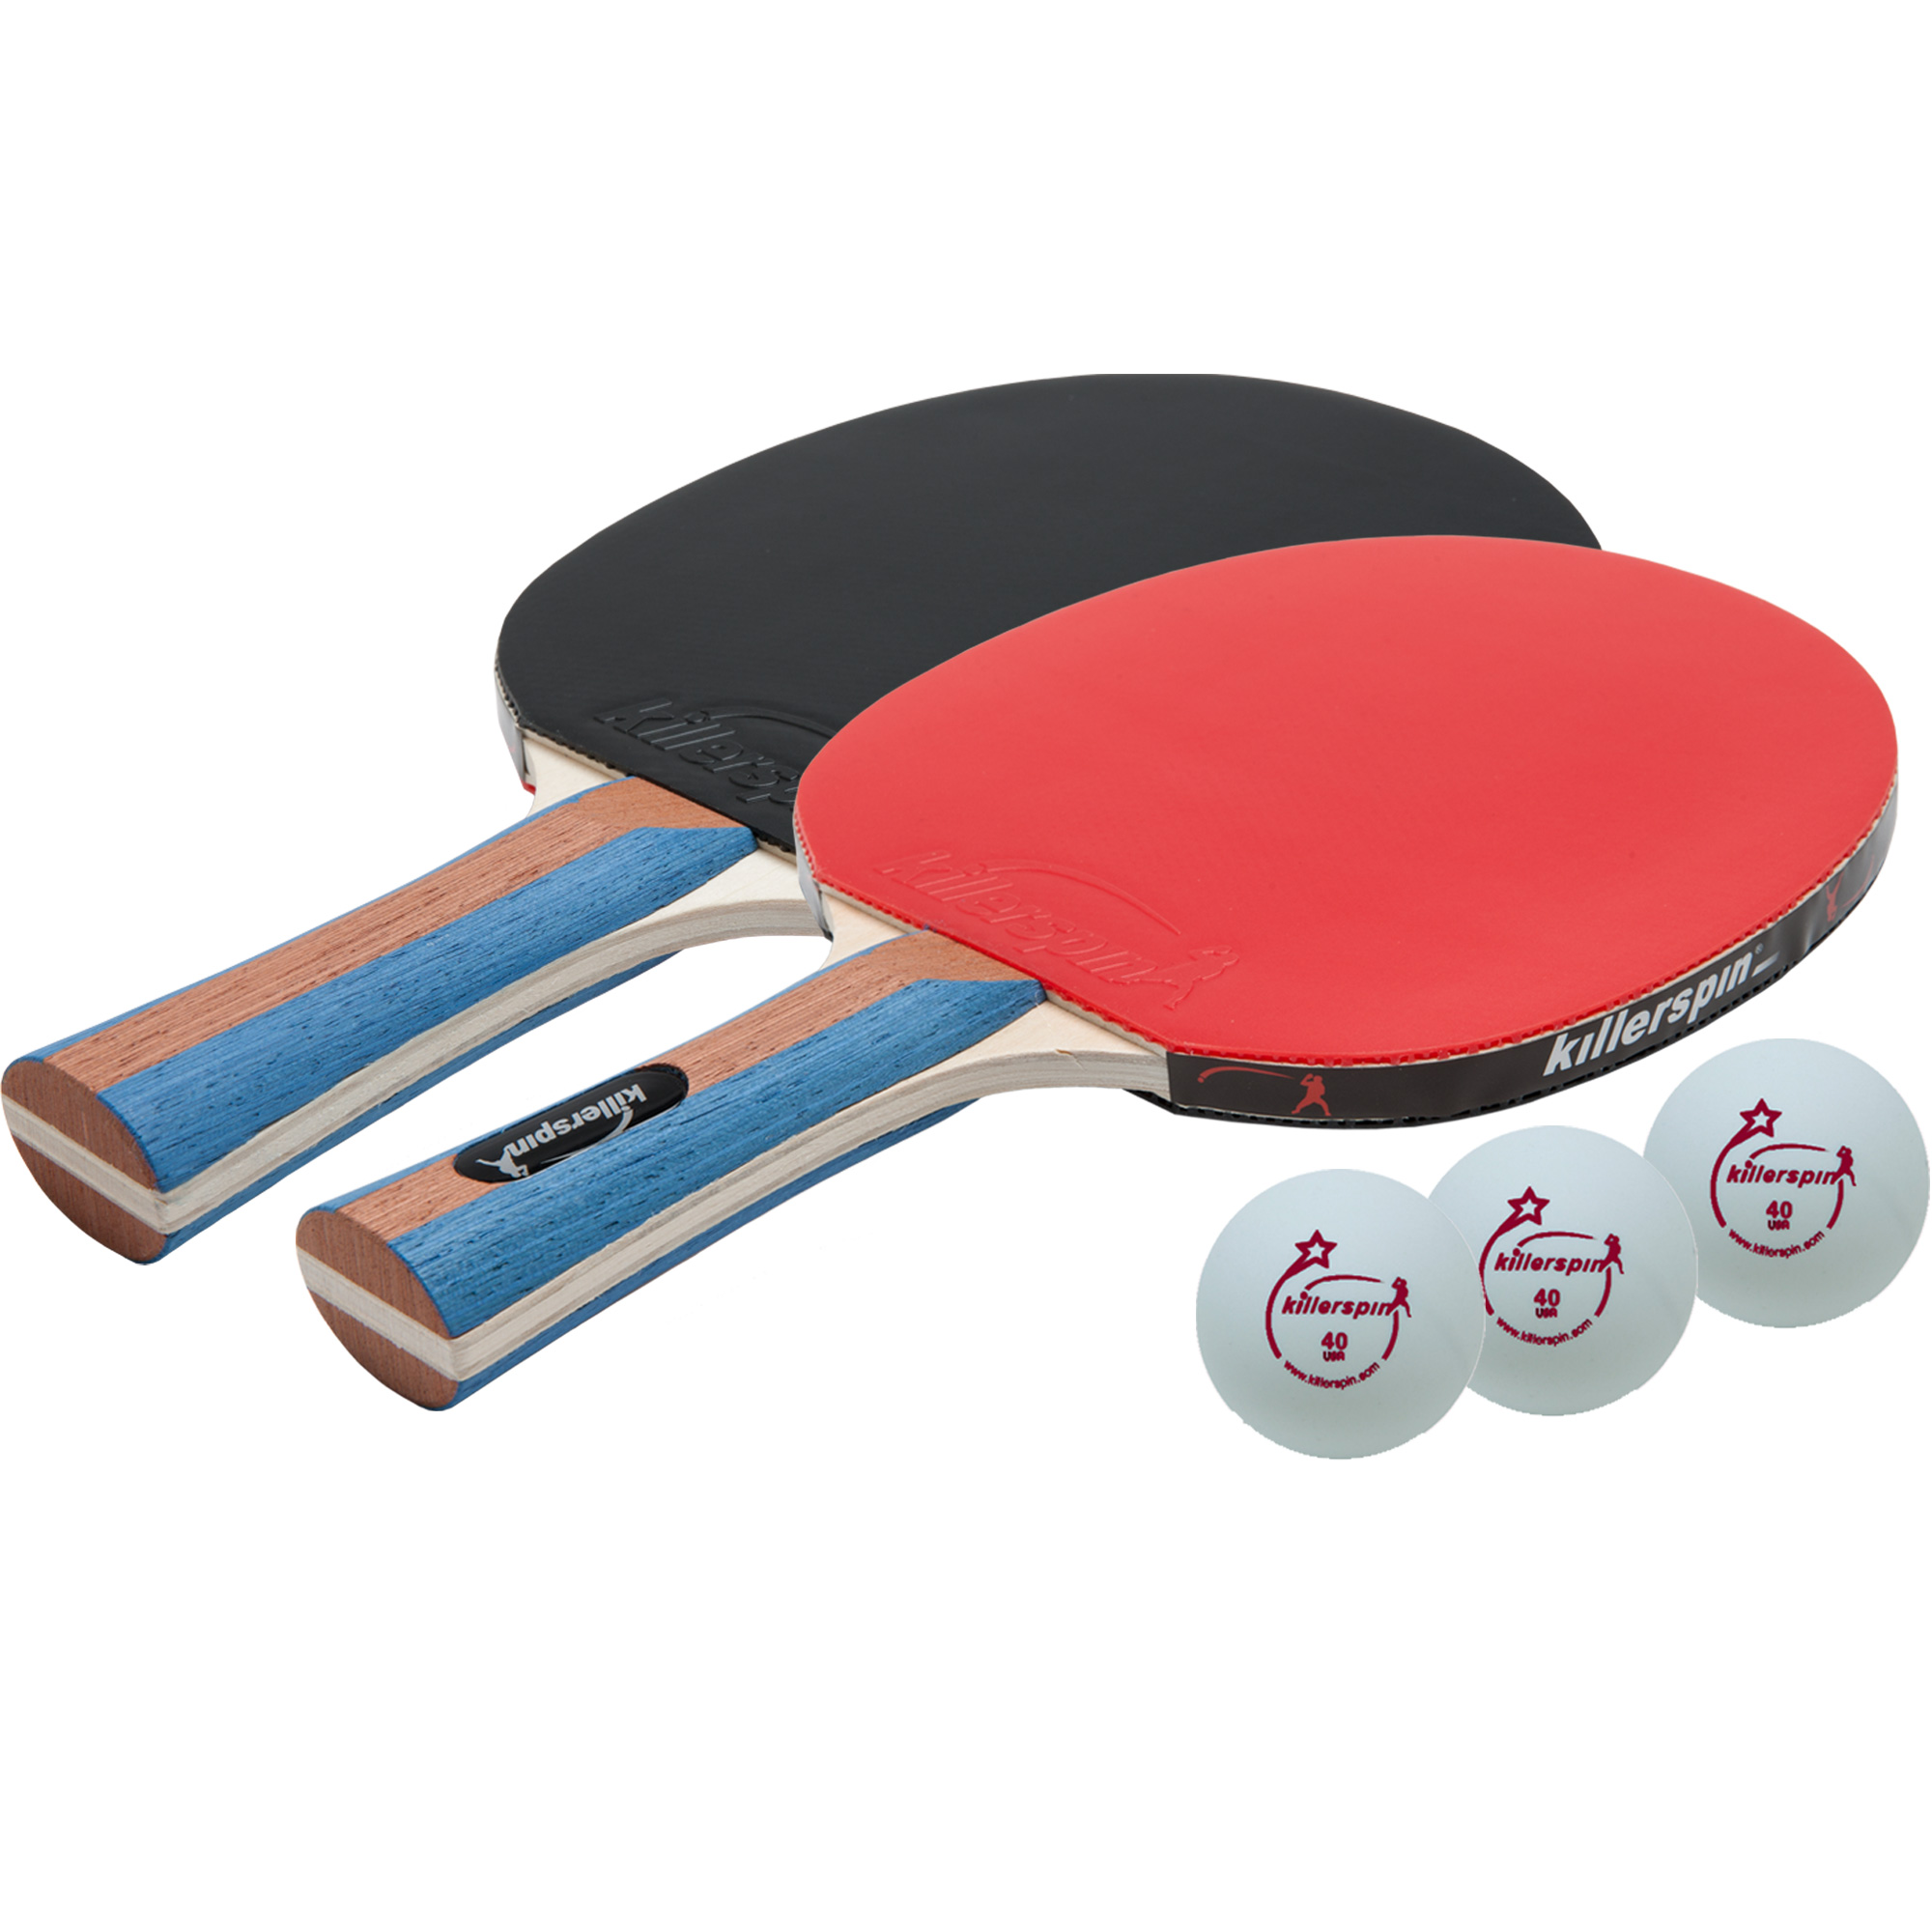 Killerspin JET SET 2 Ping Pong Paddle Set with 3 Balls u2013 Beginner Table Tennis Racket  sc 1 st  Walmart & Killerspin JET SET 2 Ping Pong Paddle Set with 3 Balls u2013 Beginner ...